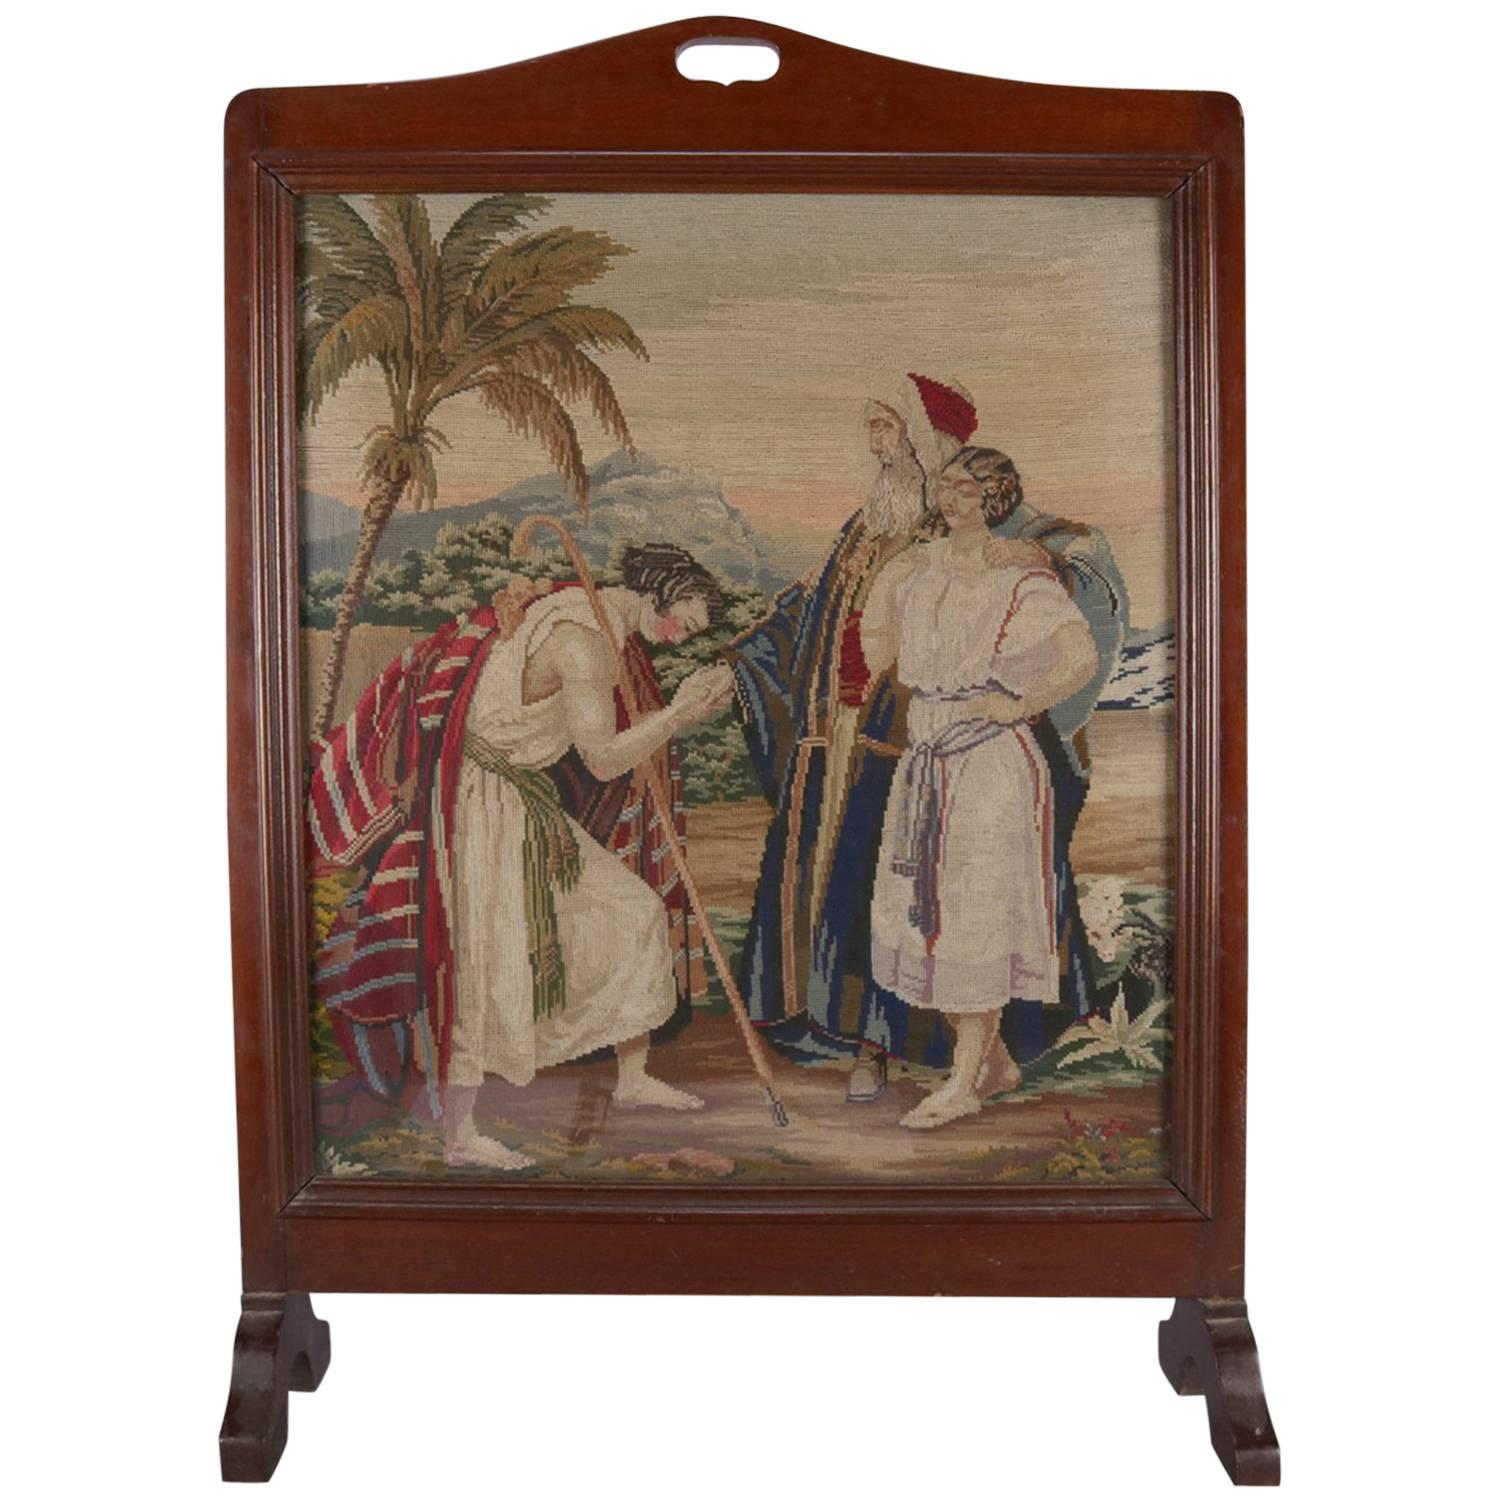 Superior Mahogany Pictorial Needlepoint Fire Screen, Moorish Royalty Scene, Circa  1890 For Sale